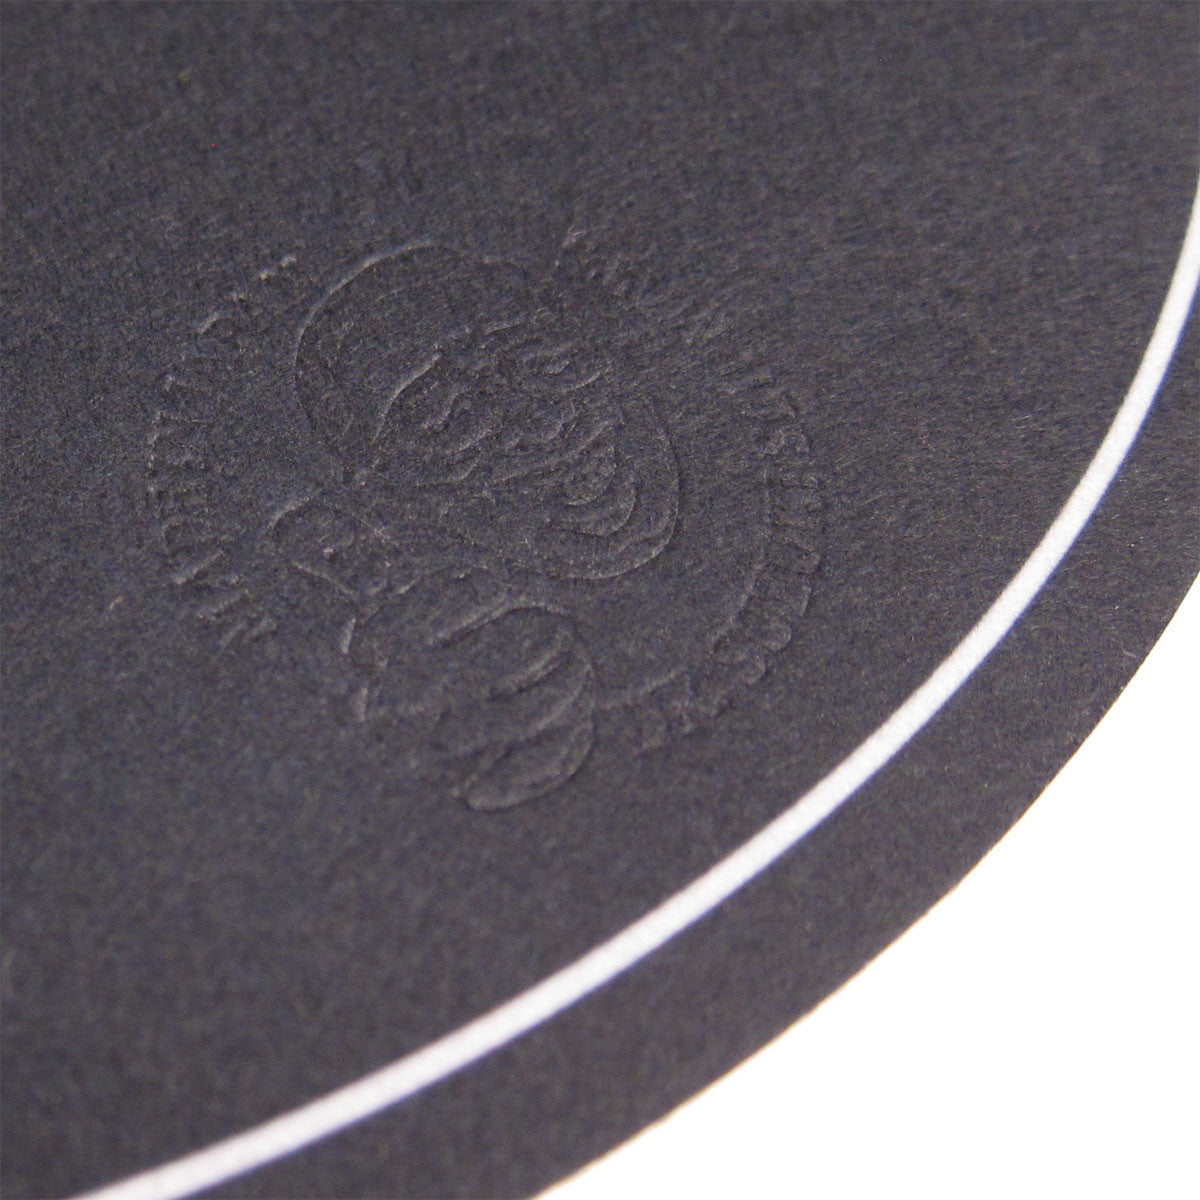 Stokyo JP: Dr. Suzuki Mix Edition Slipmats - Technics Edition close up